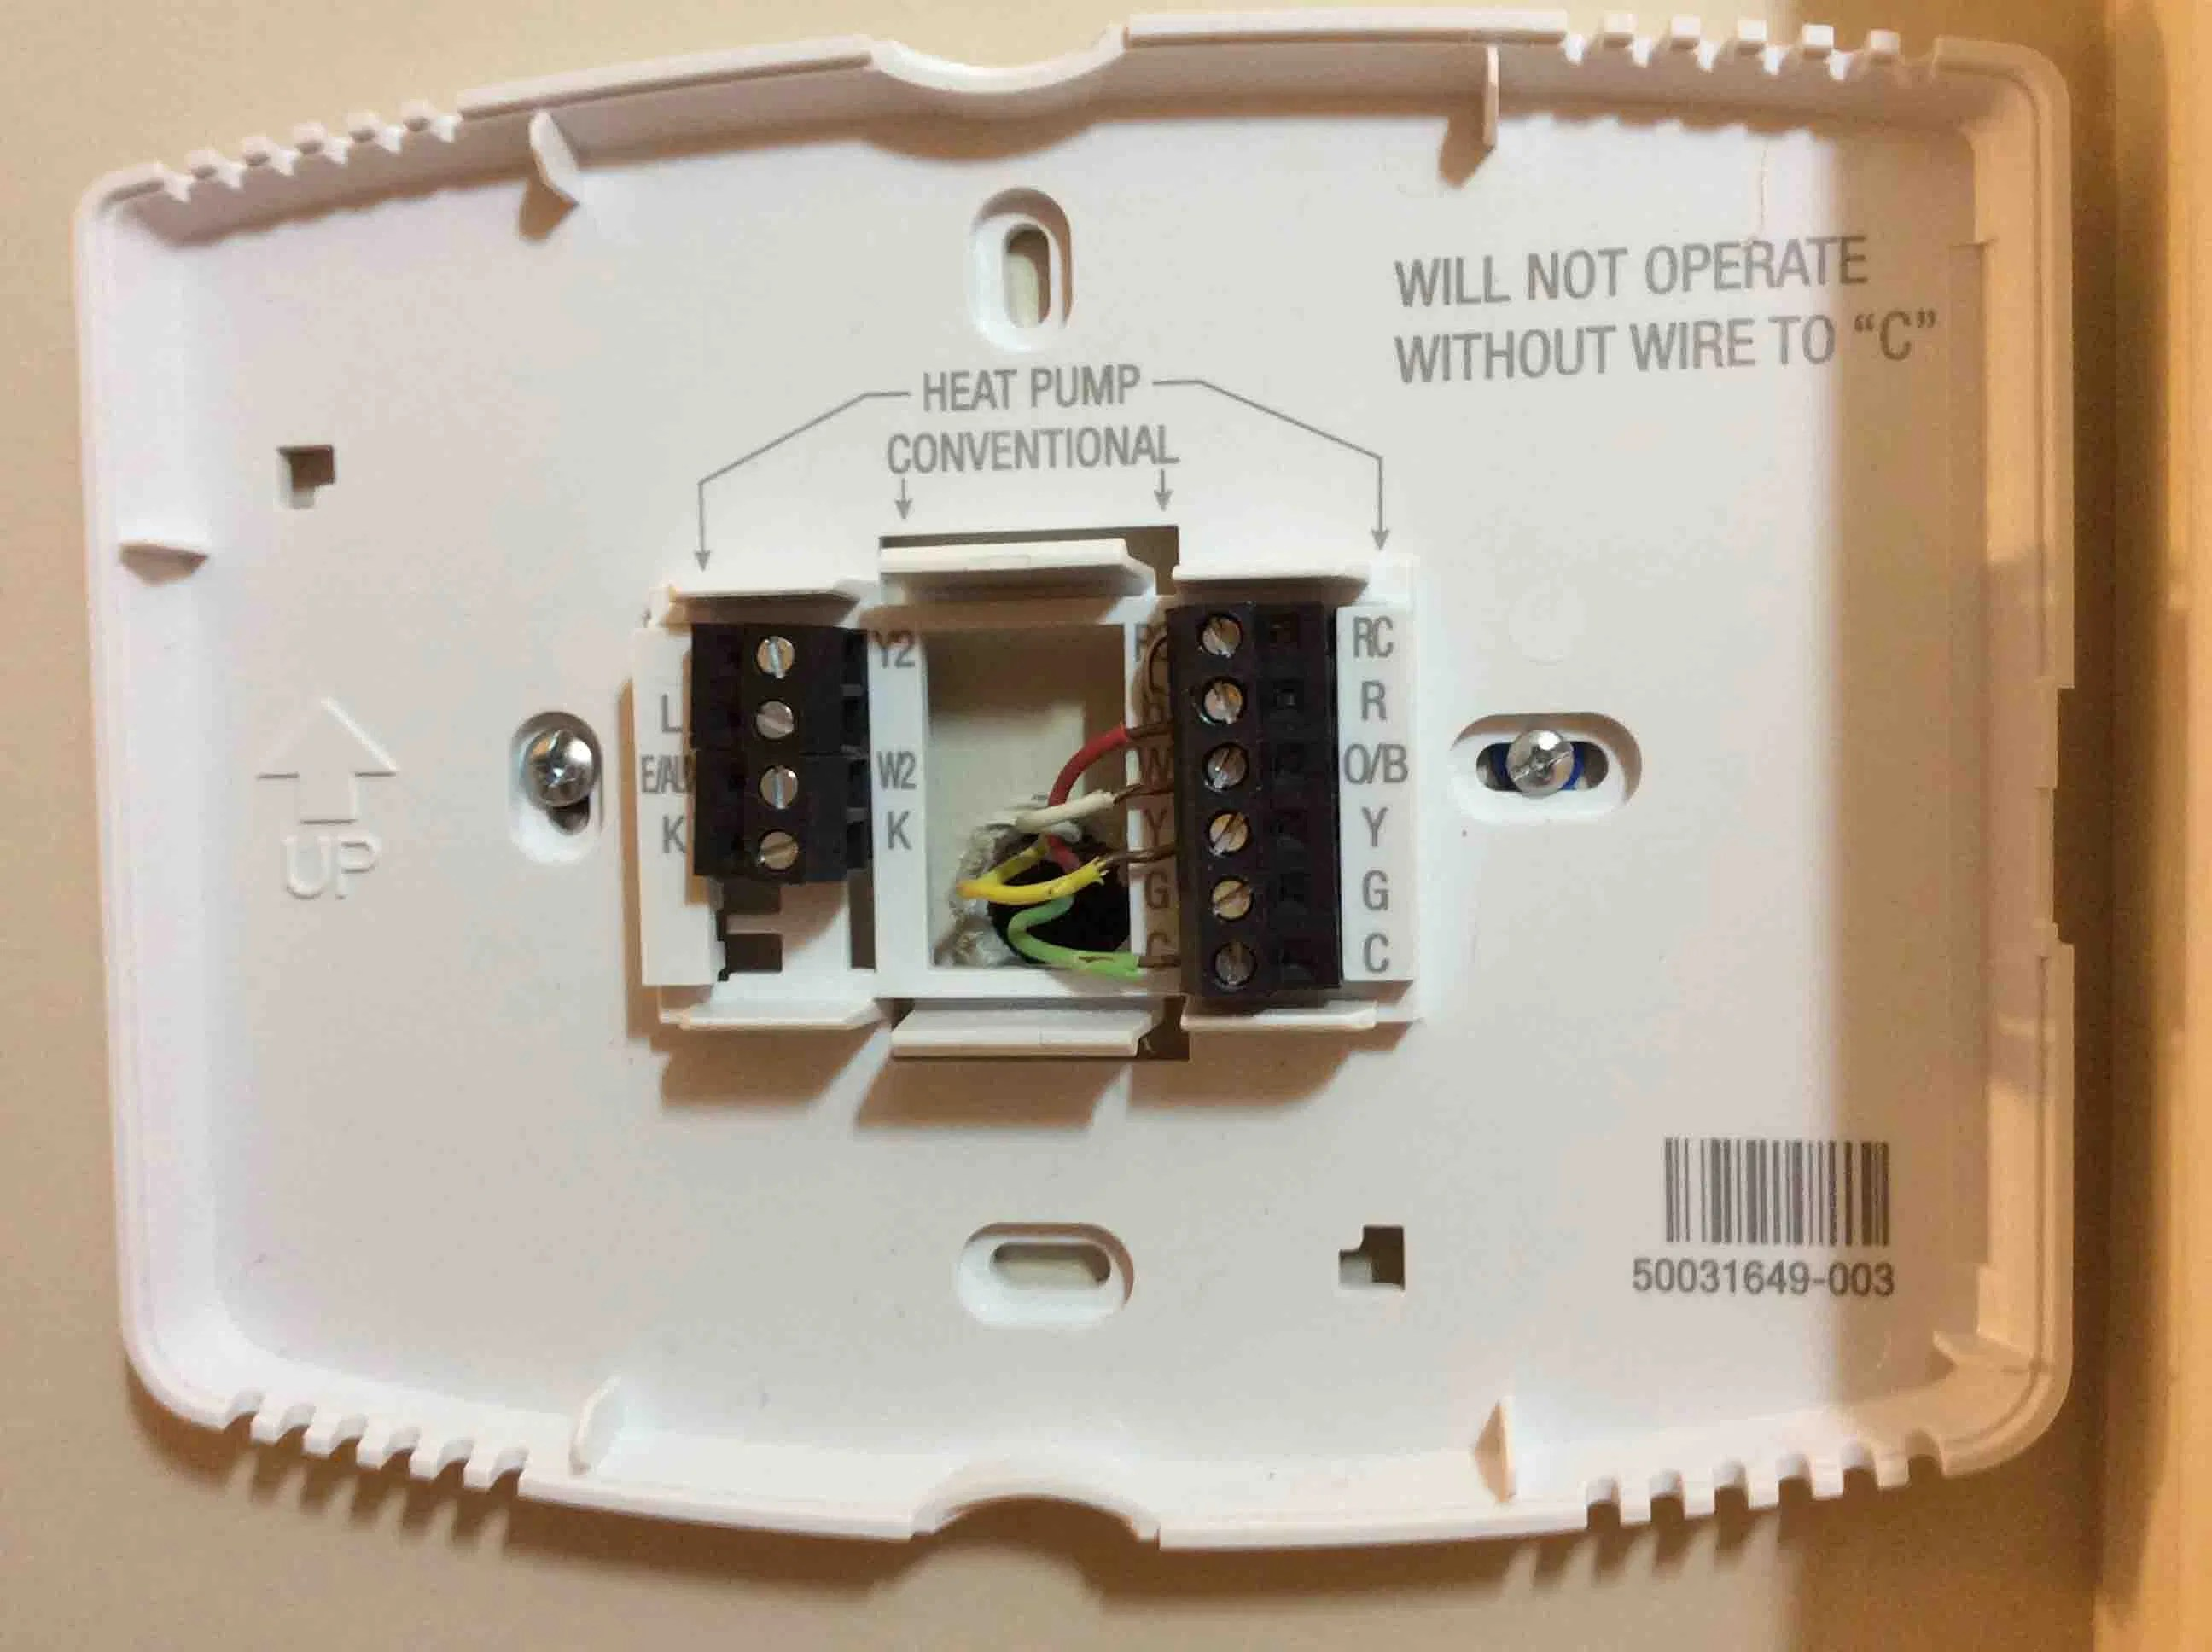 honeywell thermostat 4 wire wiring diagram tom s tek stop old honeywell thermostat wiring 5 wire honeywell thermostat [ 2592 x 1936 Pixel ]